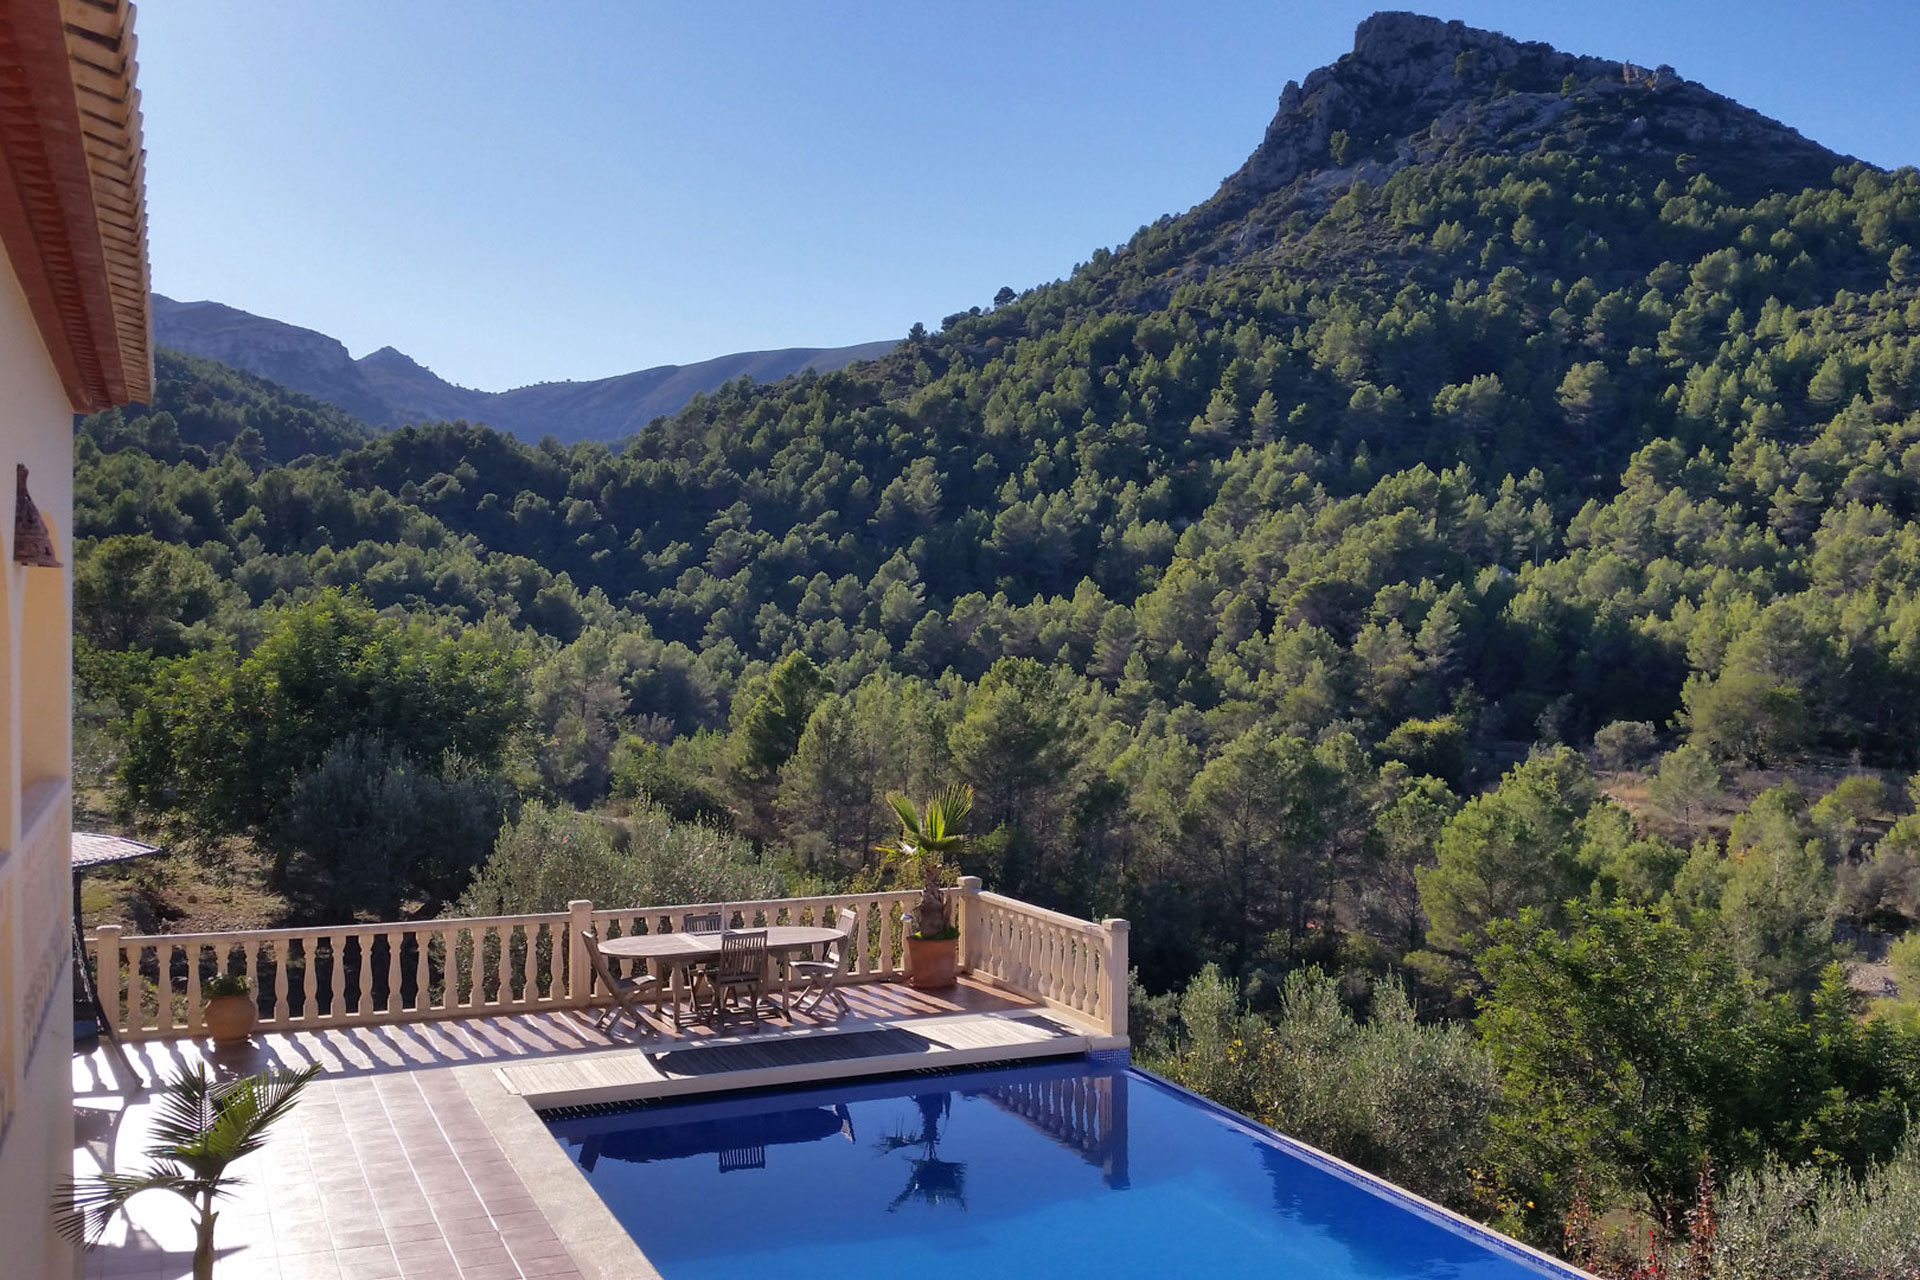 Villa-Foia-Vella-pool-with-a-view-15-ps-1920